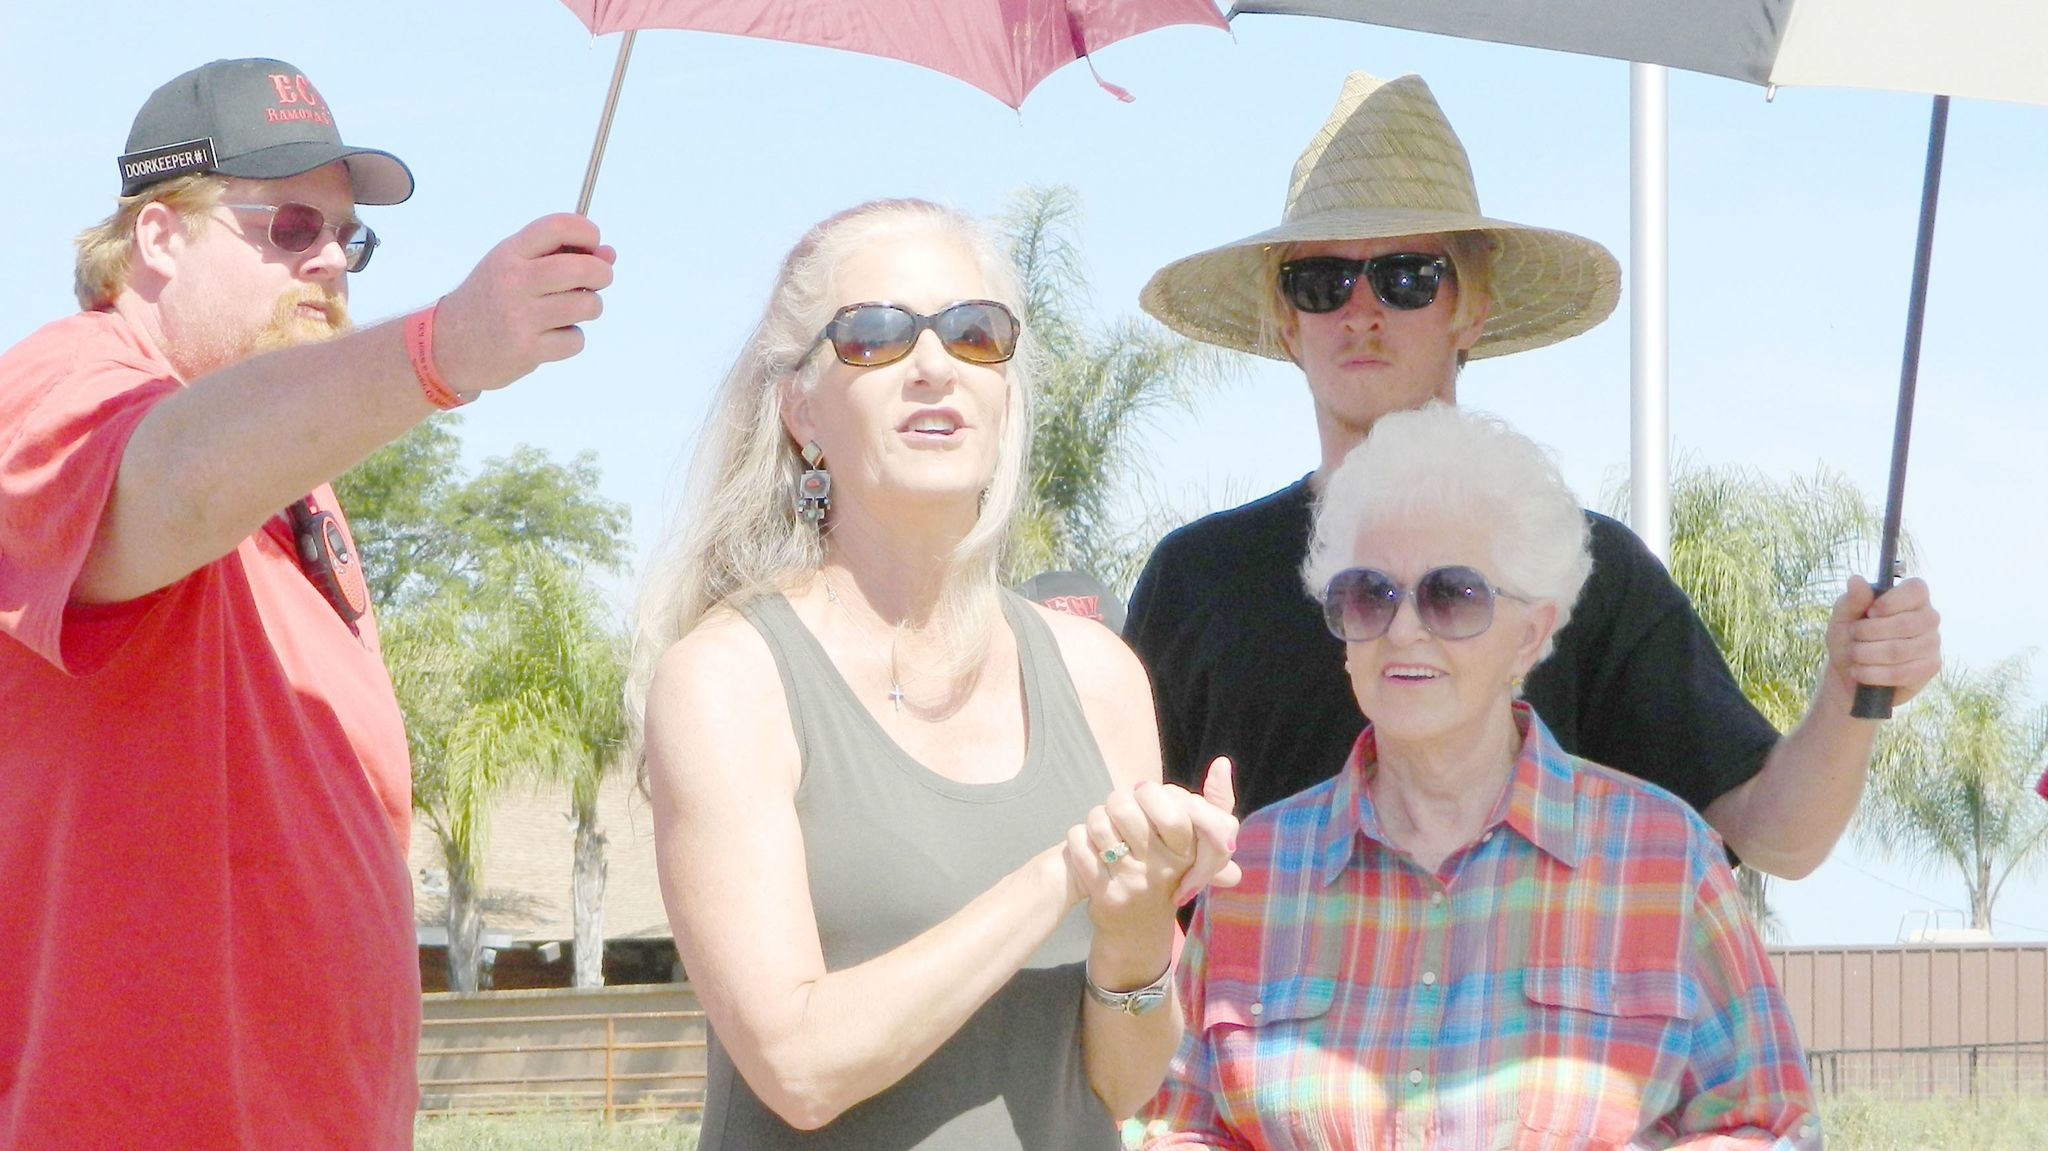 Joined by her mother, Toni Presley, Joyce Battaglia, center, thanks E Clampus Vitus members for their efforts on behalf of the family's historic property a ECV members hold umbrellas to protect the women from the sun.